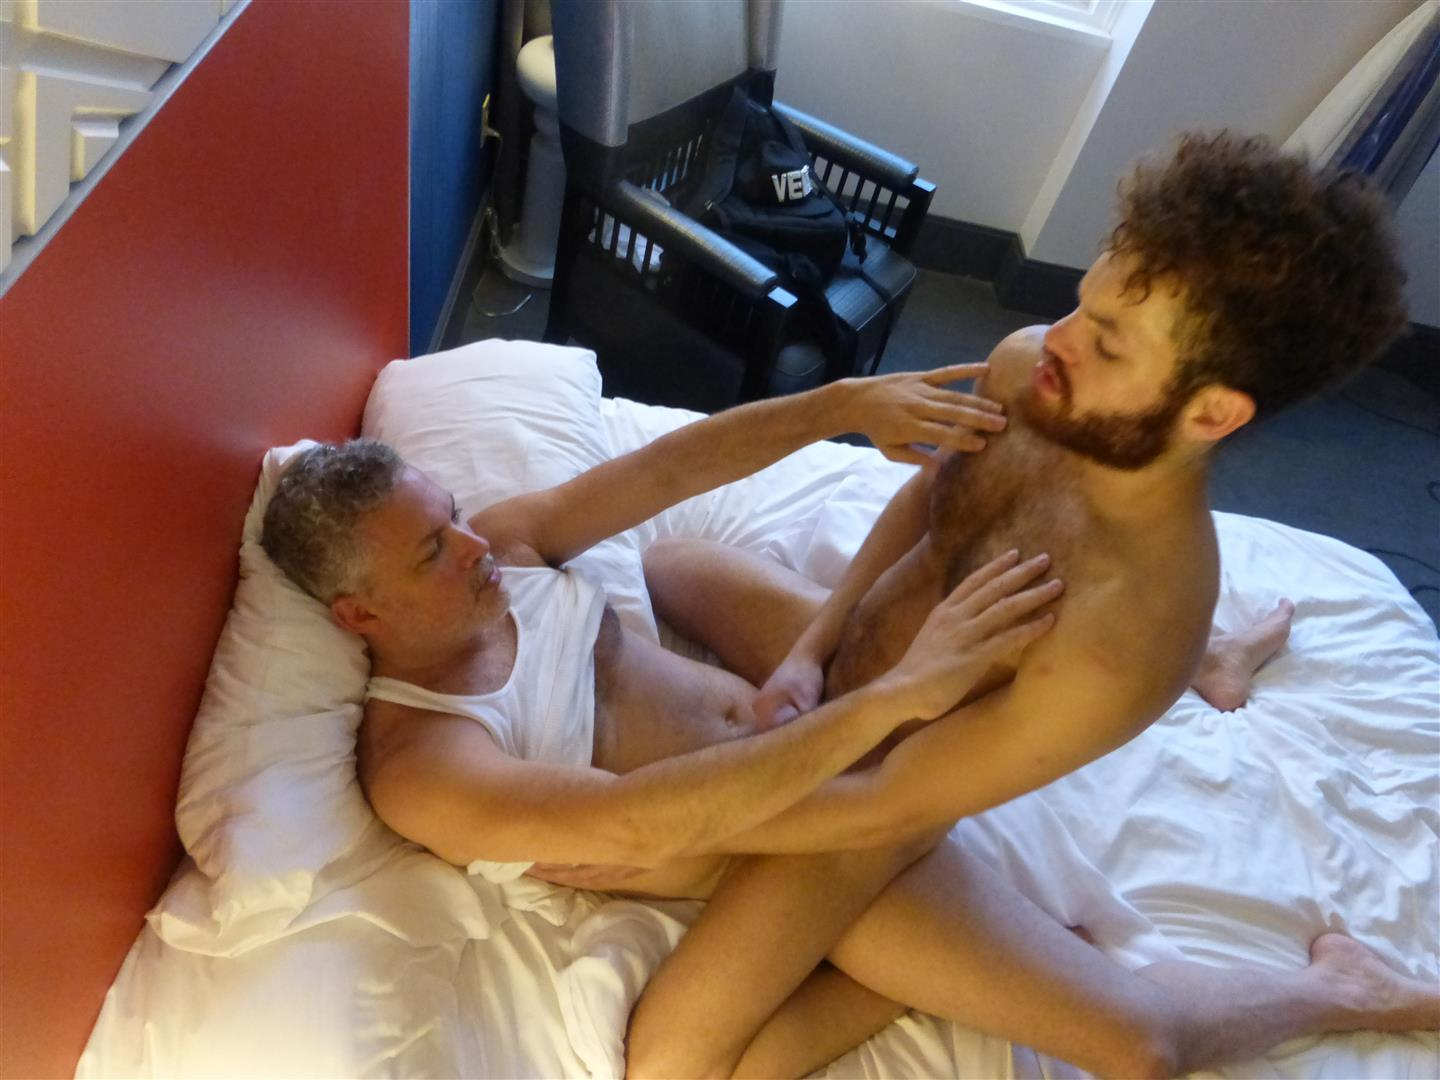 Maverick Men Adam Hairy Muscle Cub Barebacked By Two Muscle Daddies Amateur Gay Porn 42 Young Hairy Muscle Cub With A Big Uncut Cock Takes Two Daddy Cocks